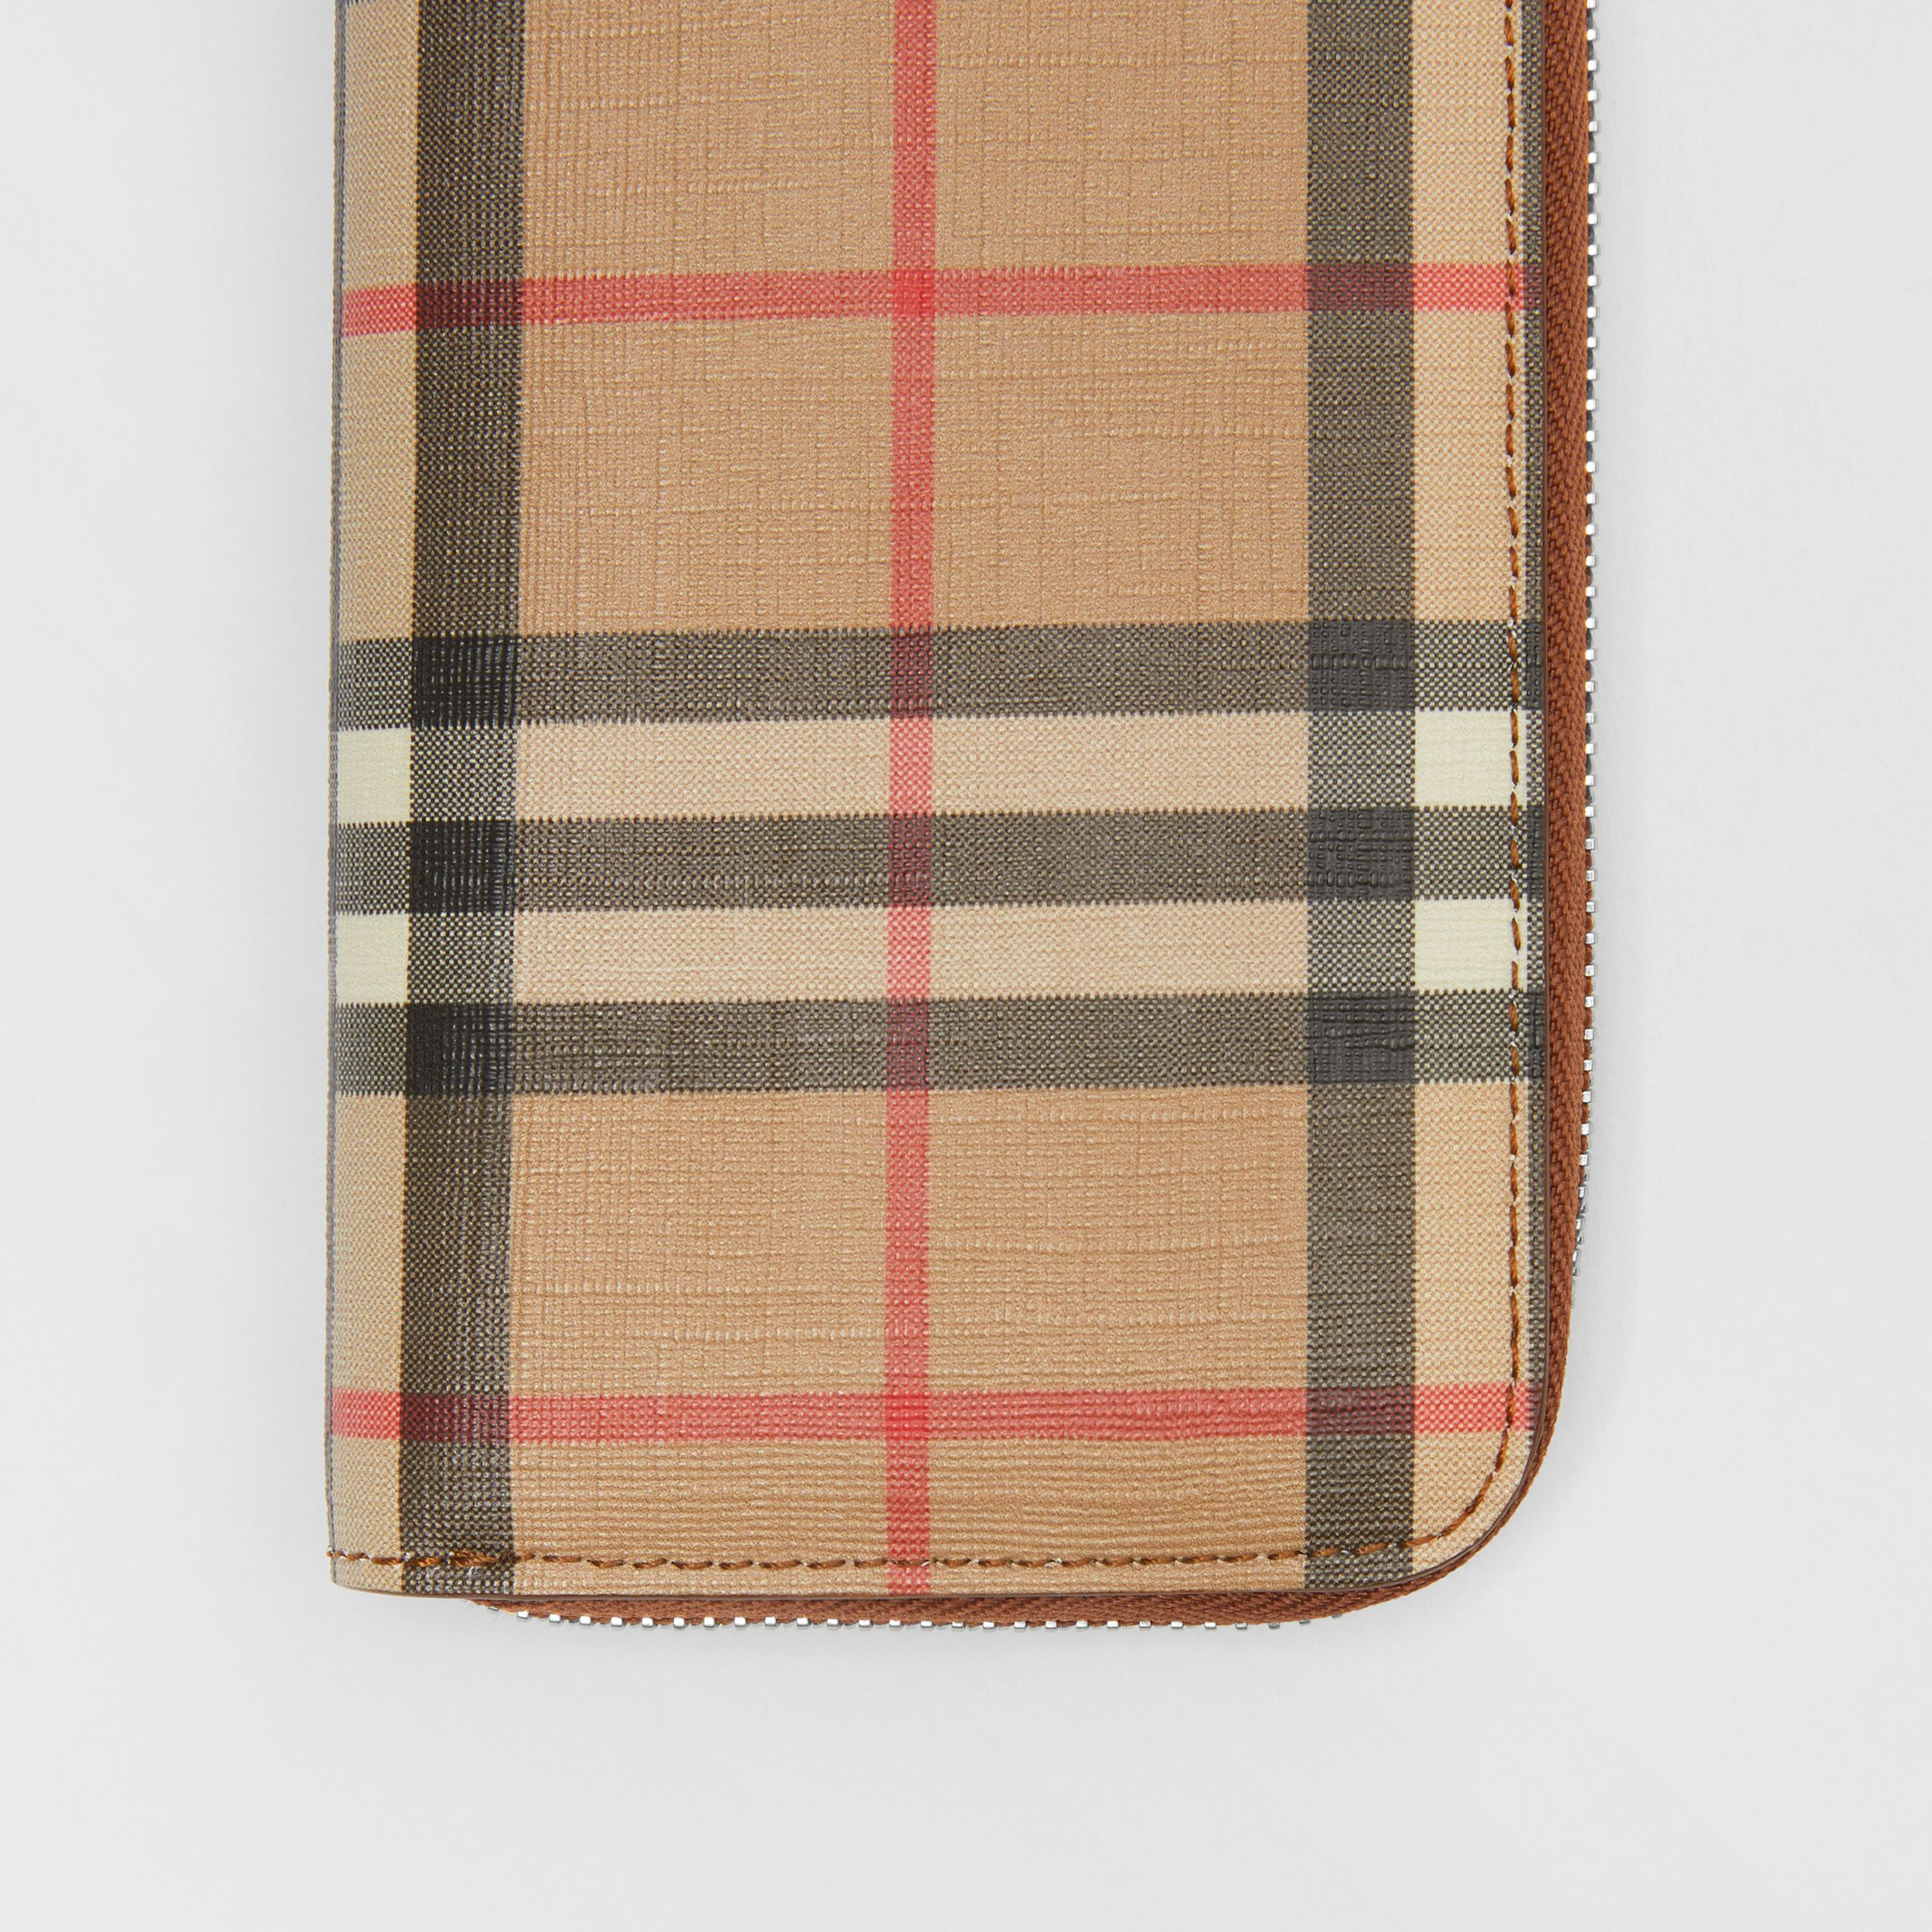 Vintage Check and Leather Ziparound Wallet in Malt Brown - Women | Burberry - 2